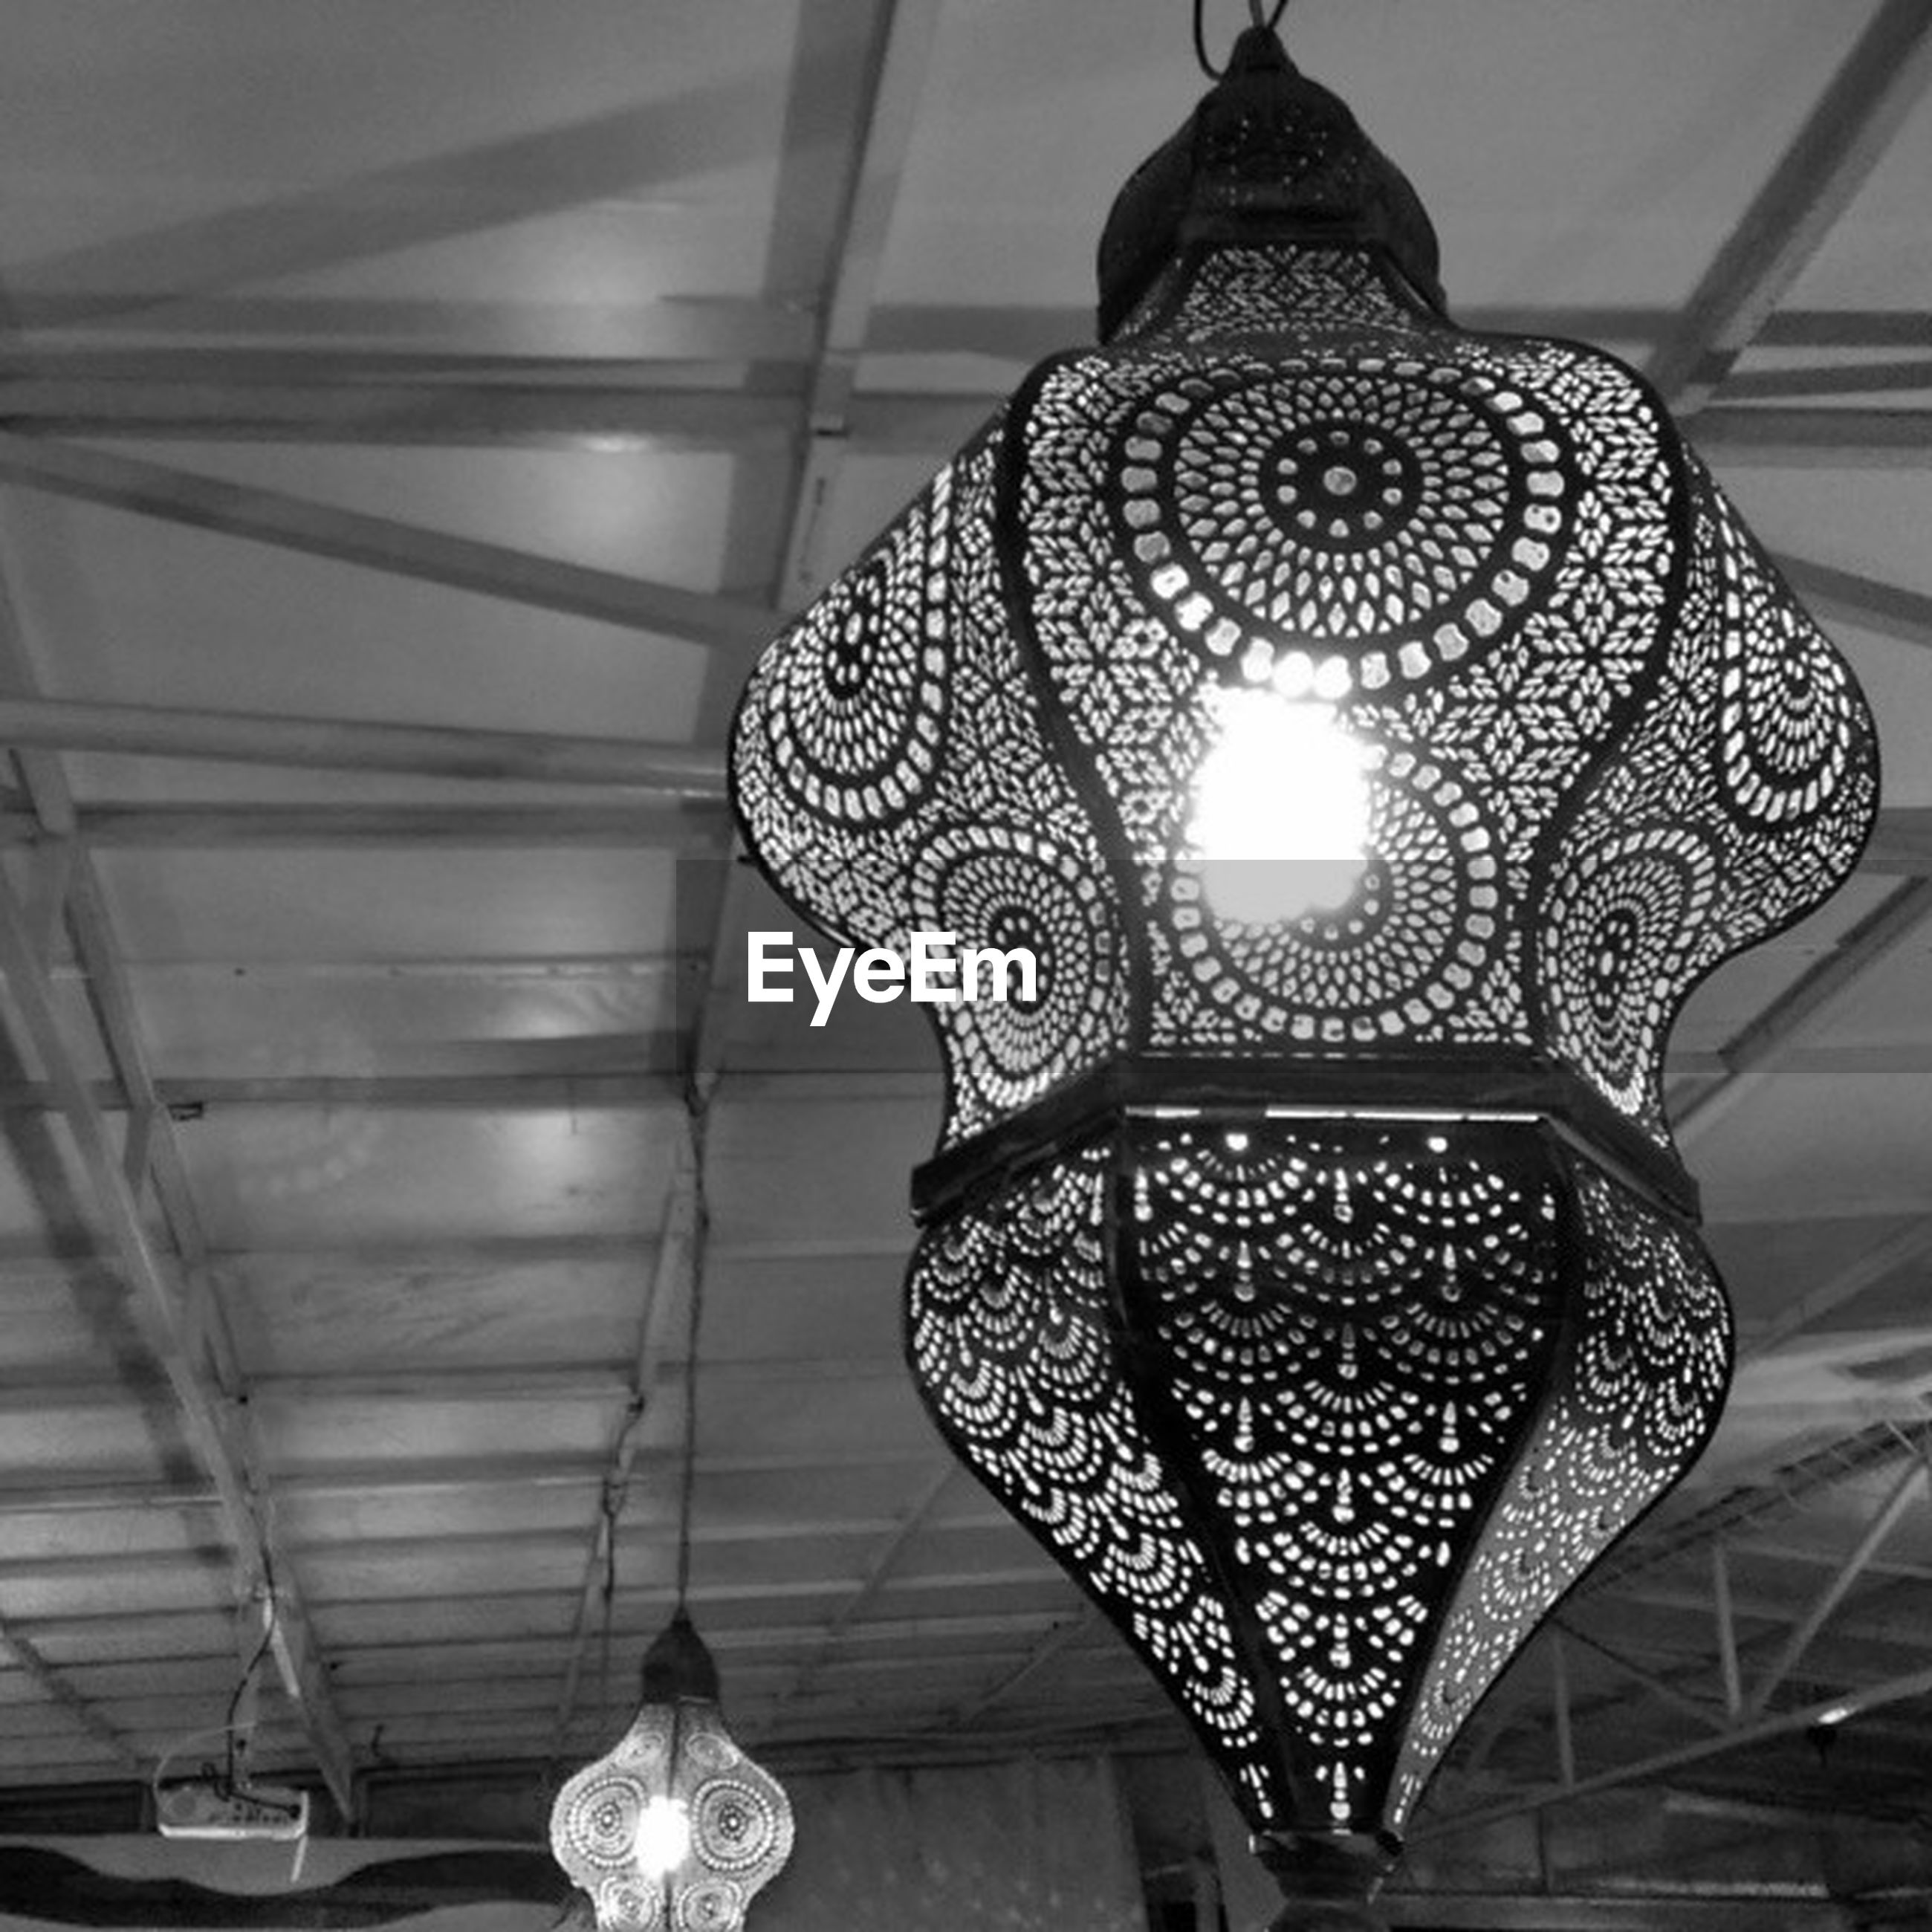 indoors, lighting equipment, hanging, ceiling, illuminated, chandelier, decoration, low angle view, electric lamp, decor, home interior, design, electric light, electricity, pattern, ornate, no people, lamp, lantern, built structure